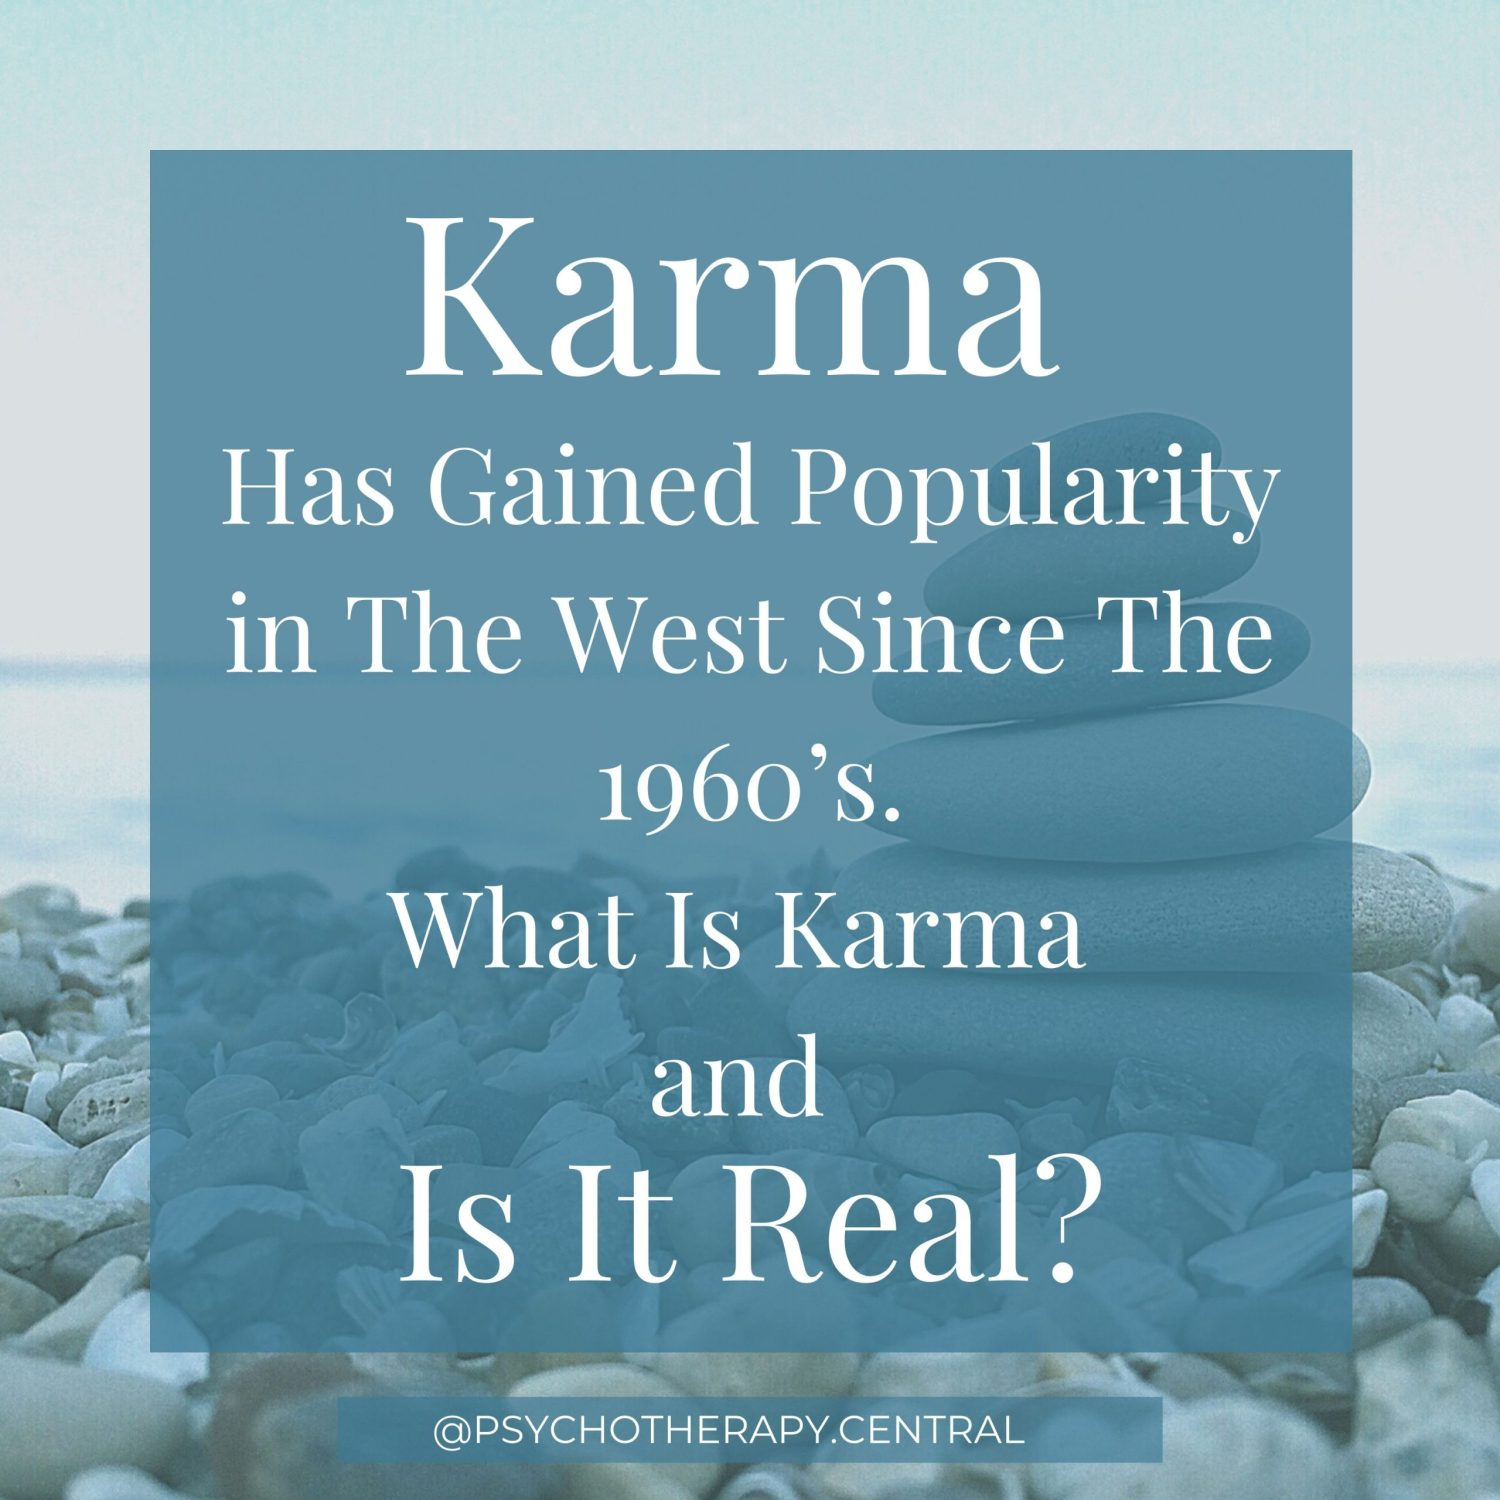 Here are some of my musings about karma as an idea. I have been thinking about this a lot recently and would love to hear your thoughts. Disclaimer: I don't have a feeling about whether it is good or bad, I just wanted to explore it as a popular world view. As a therapist, world views come up a lot to explore, and I was keen to hear your thoughts. Does the idea of karma form part of your world view? Is it helpful to you?